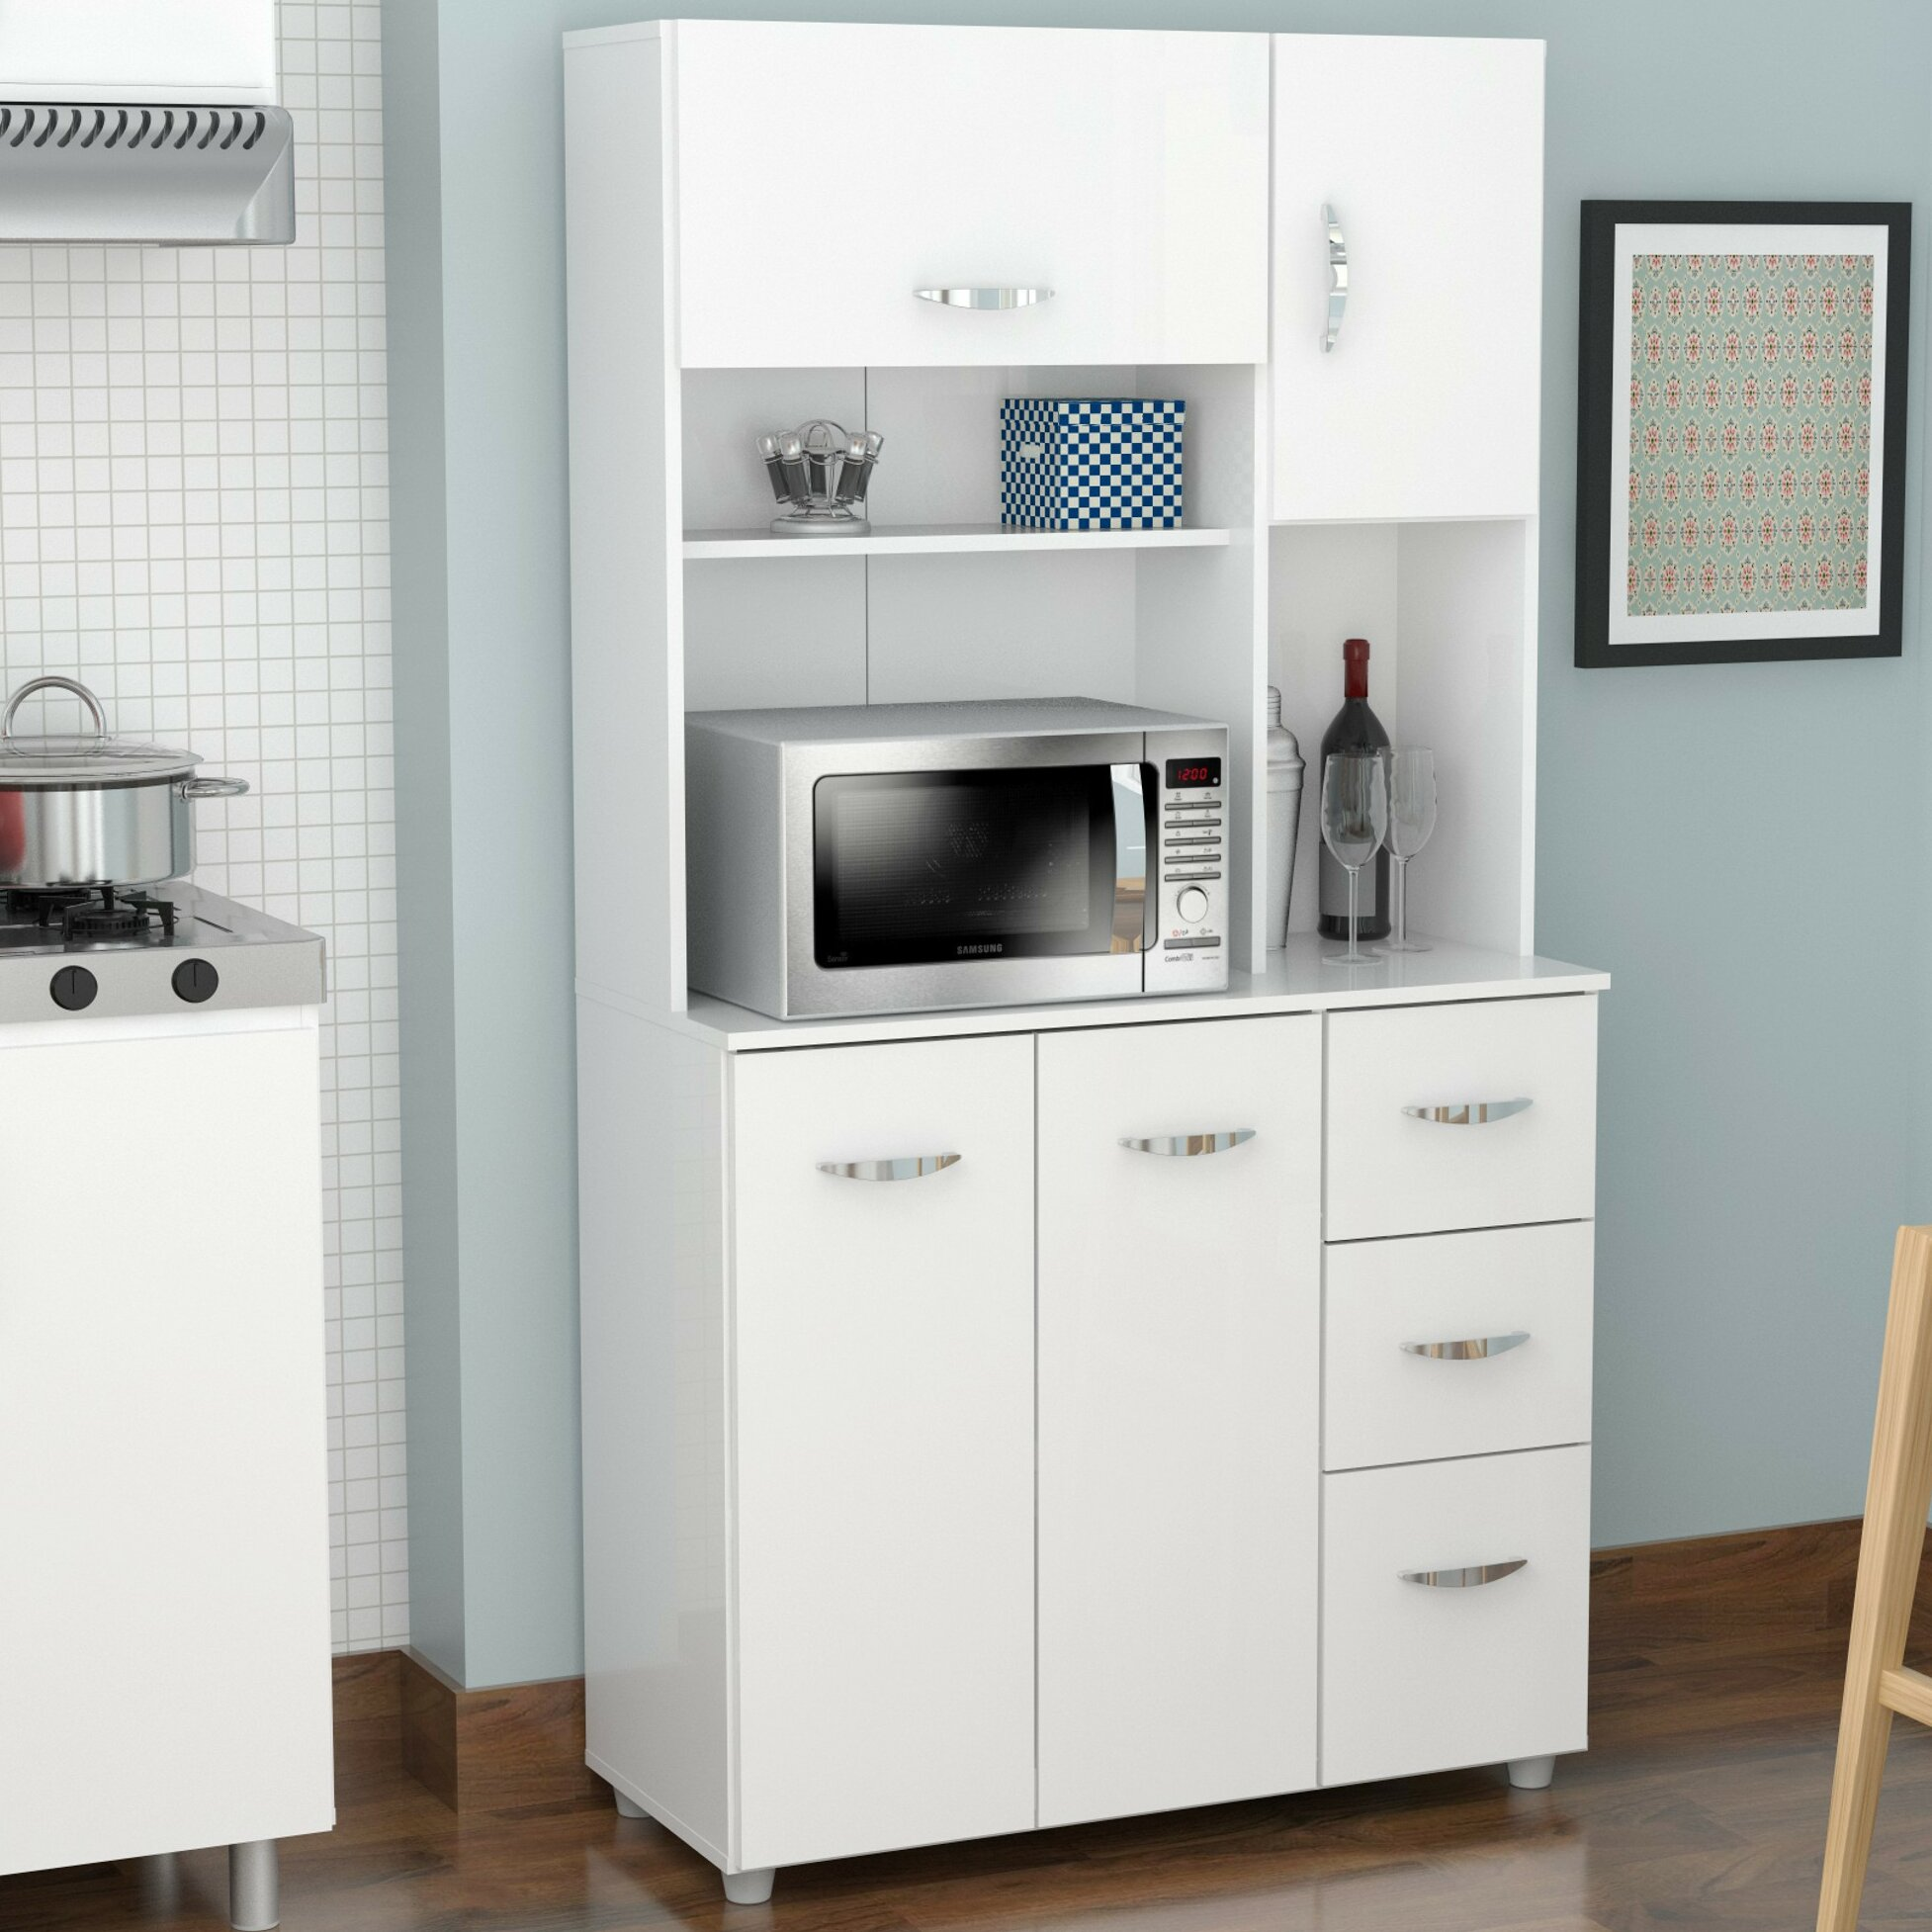 Inval kitchen pantry reviews wayfair - Bathroom pantry cabinets ...